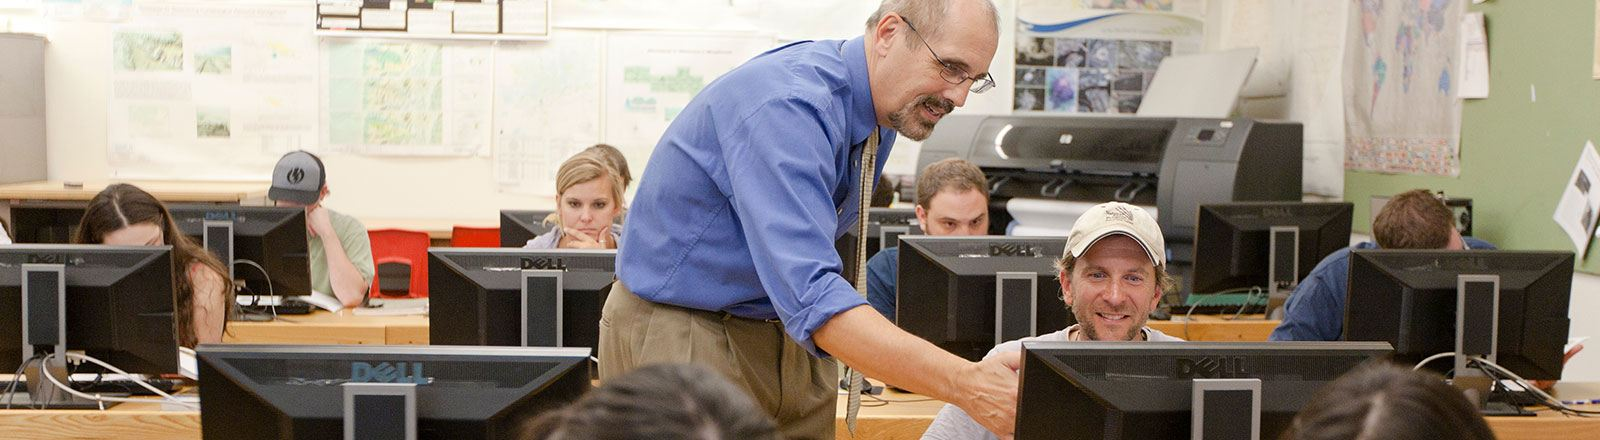 Geography professor and student working at computer